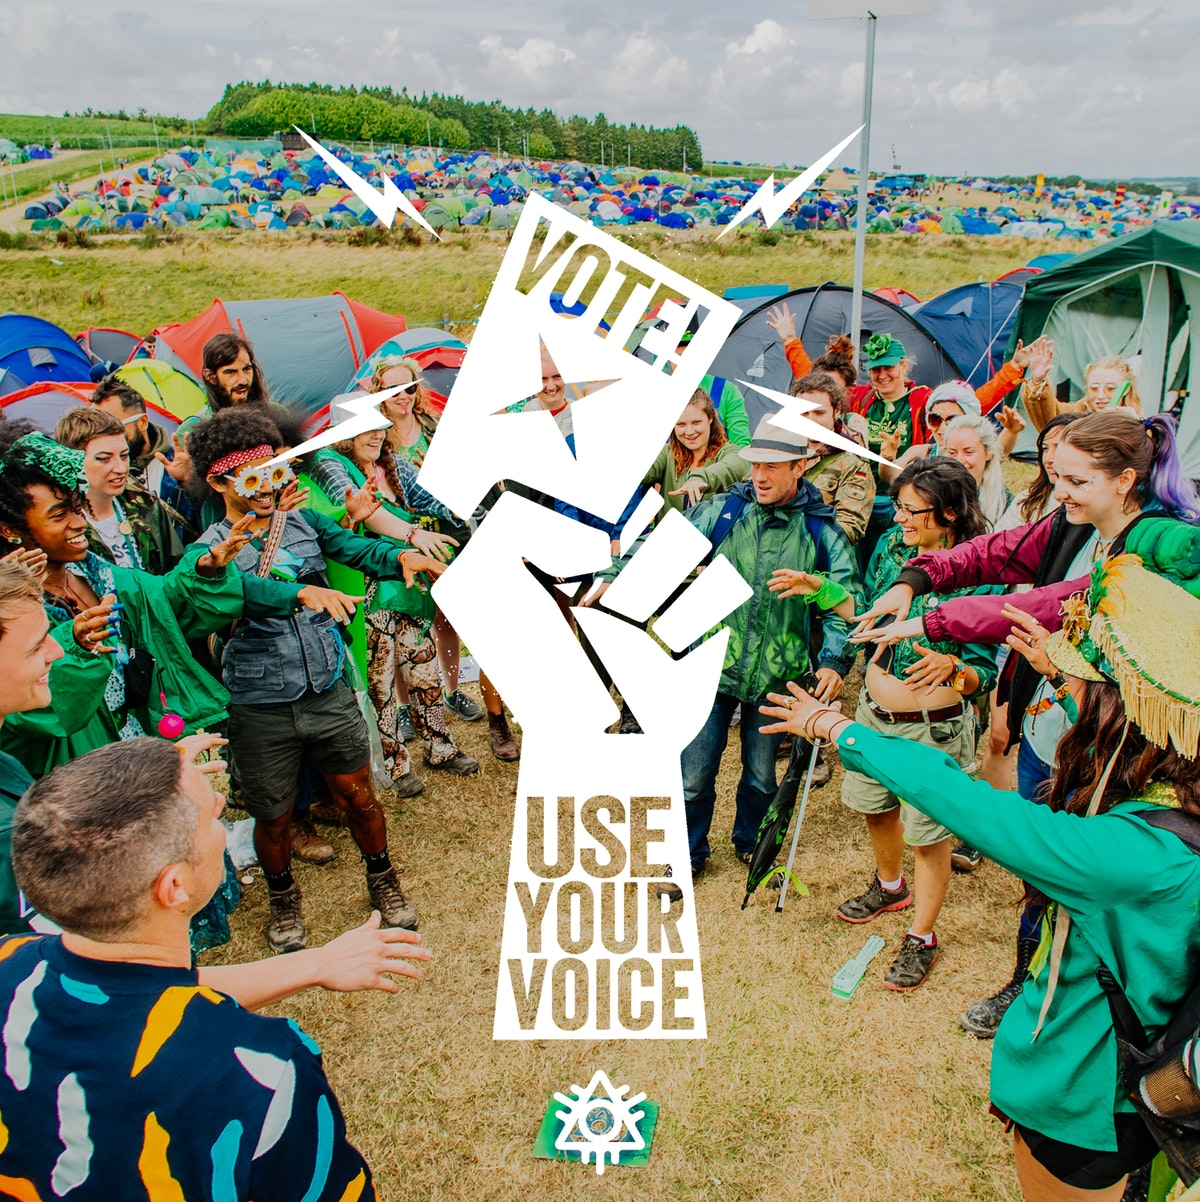 #UseYourVoice2019: Register to vote, win festival tickets!